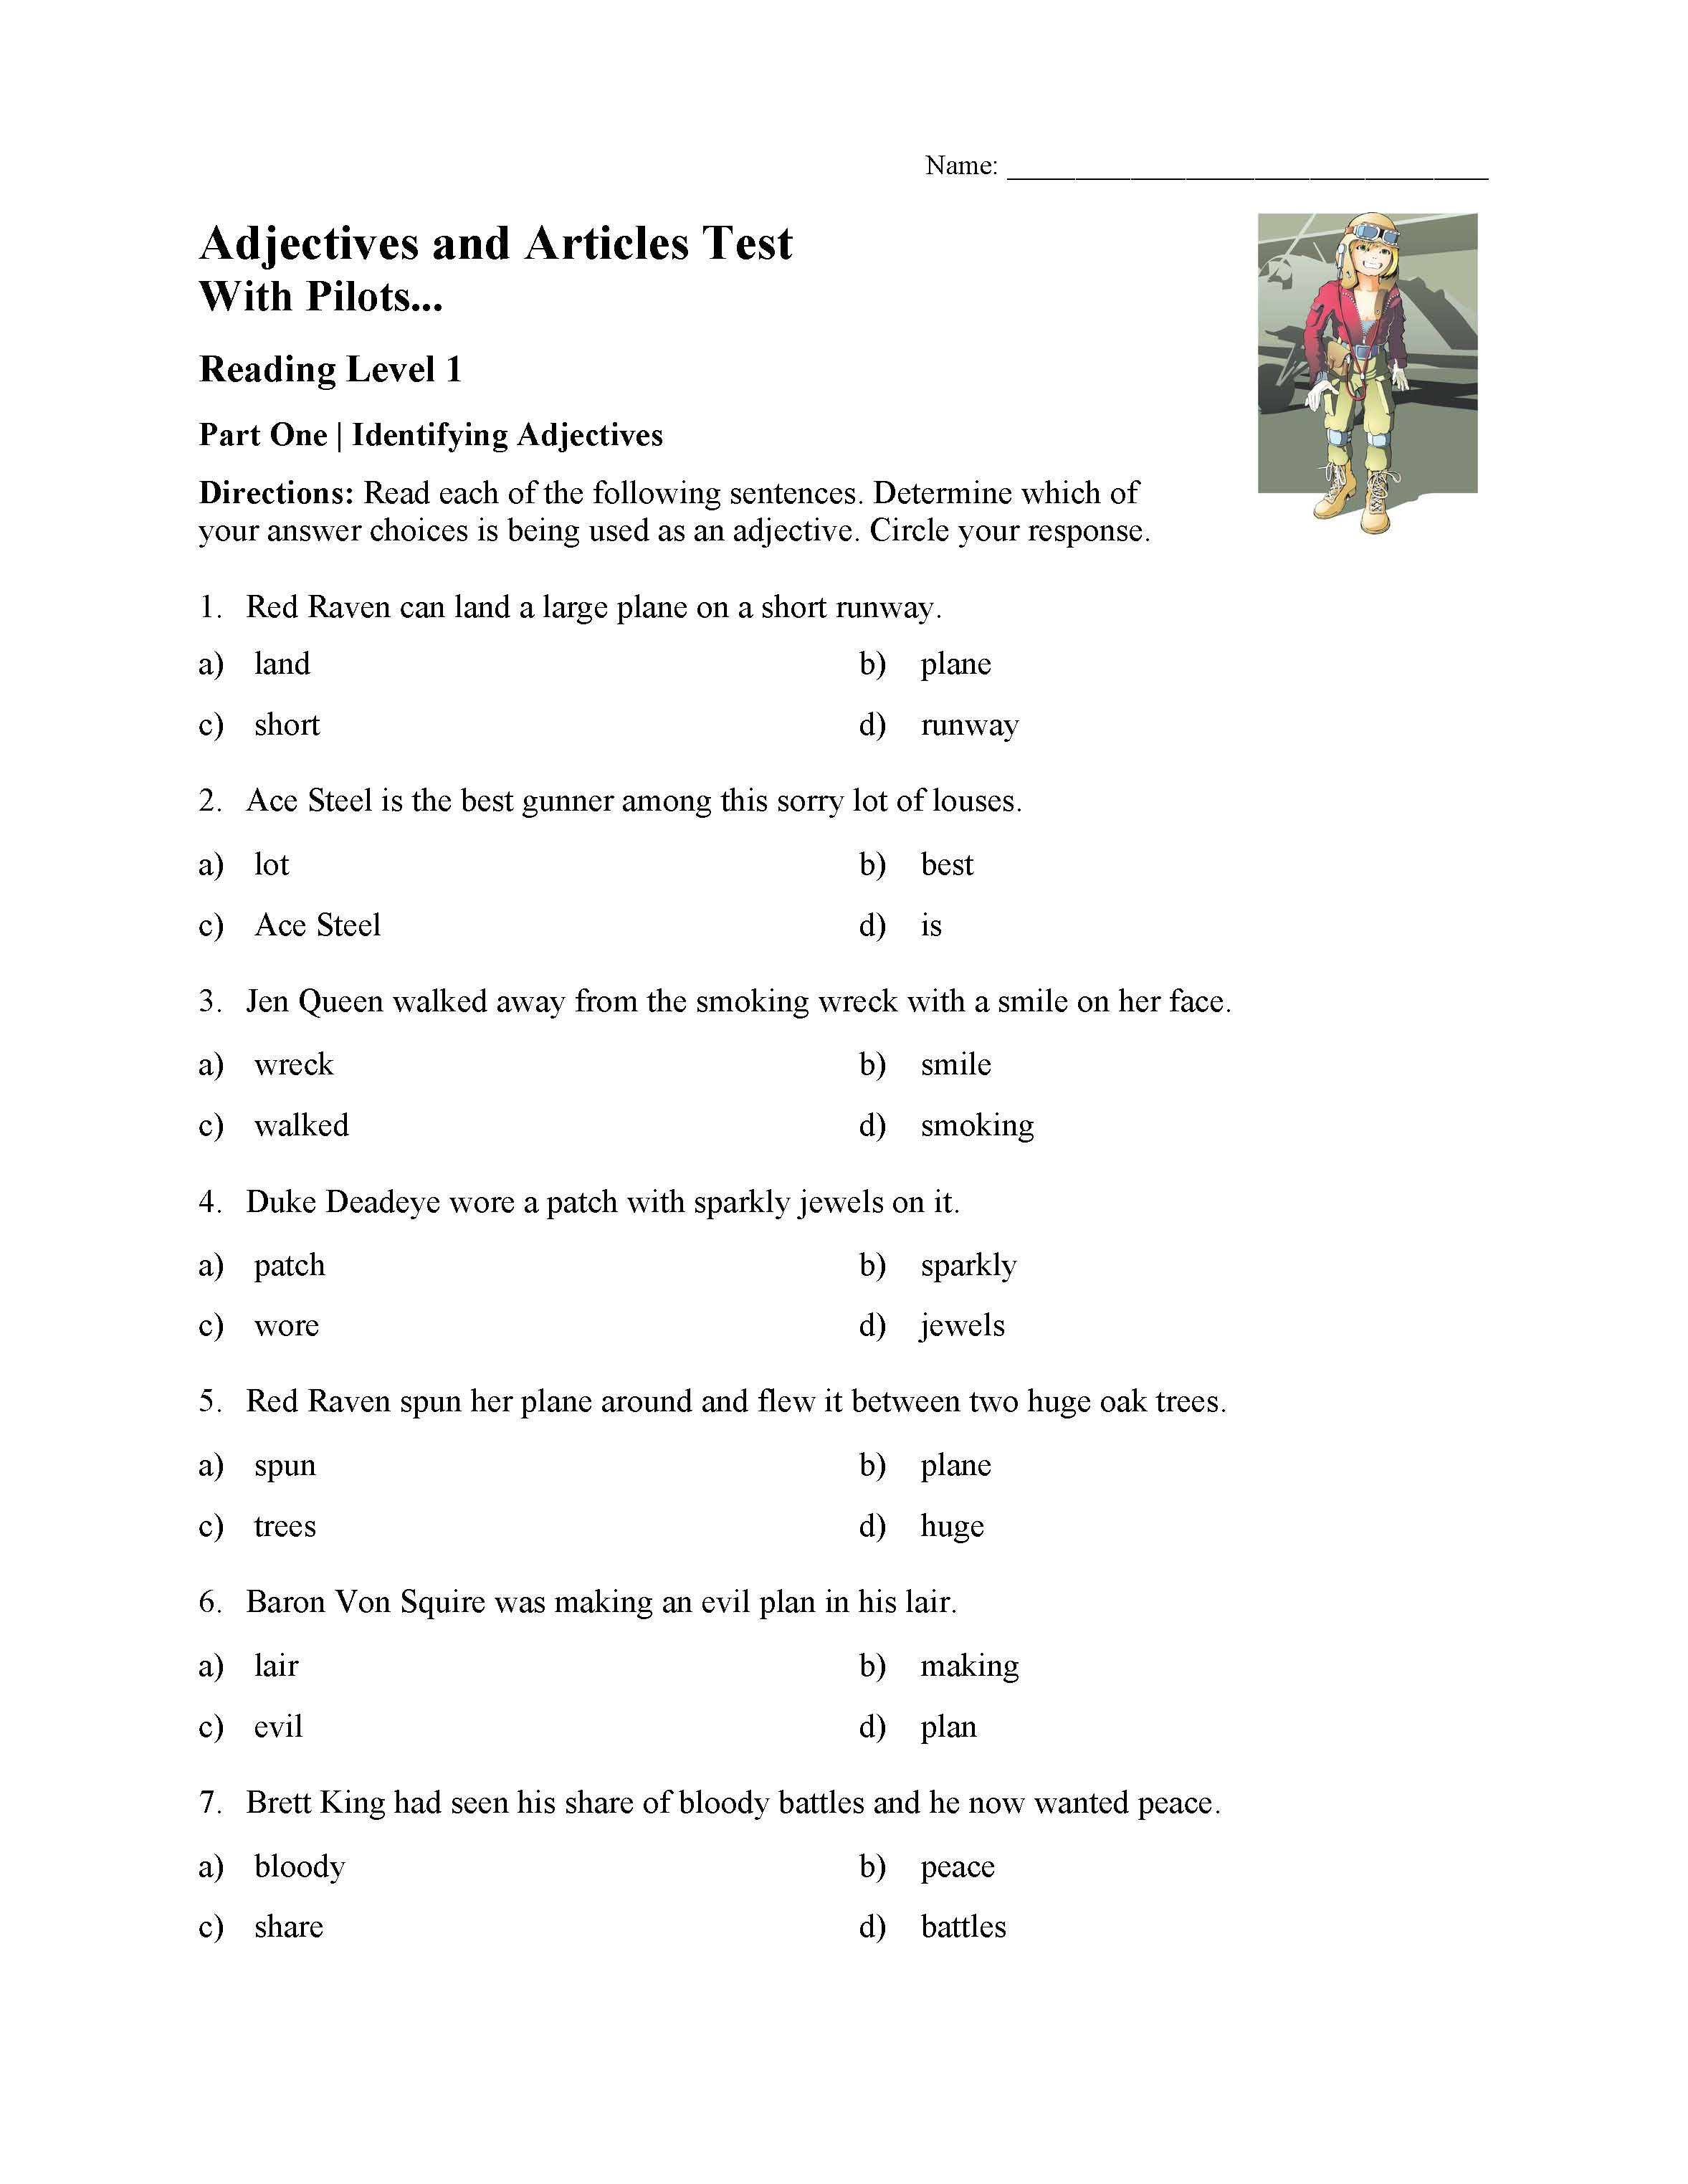 This is a preview image of the Adjectives and Articles Test With Pilots - Reading Level 1.